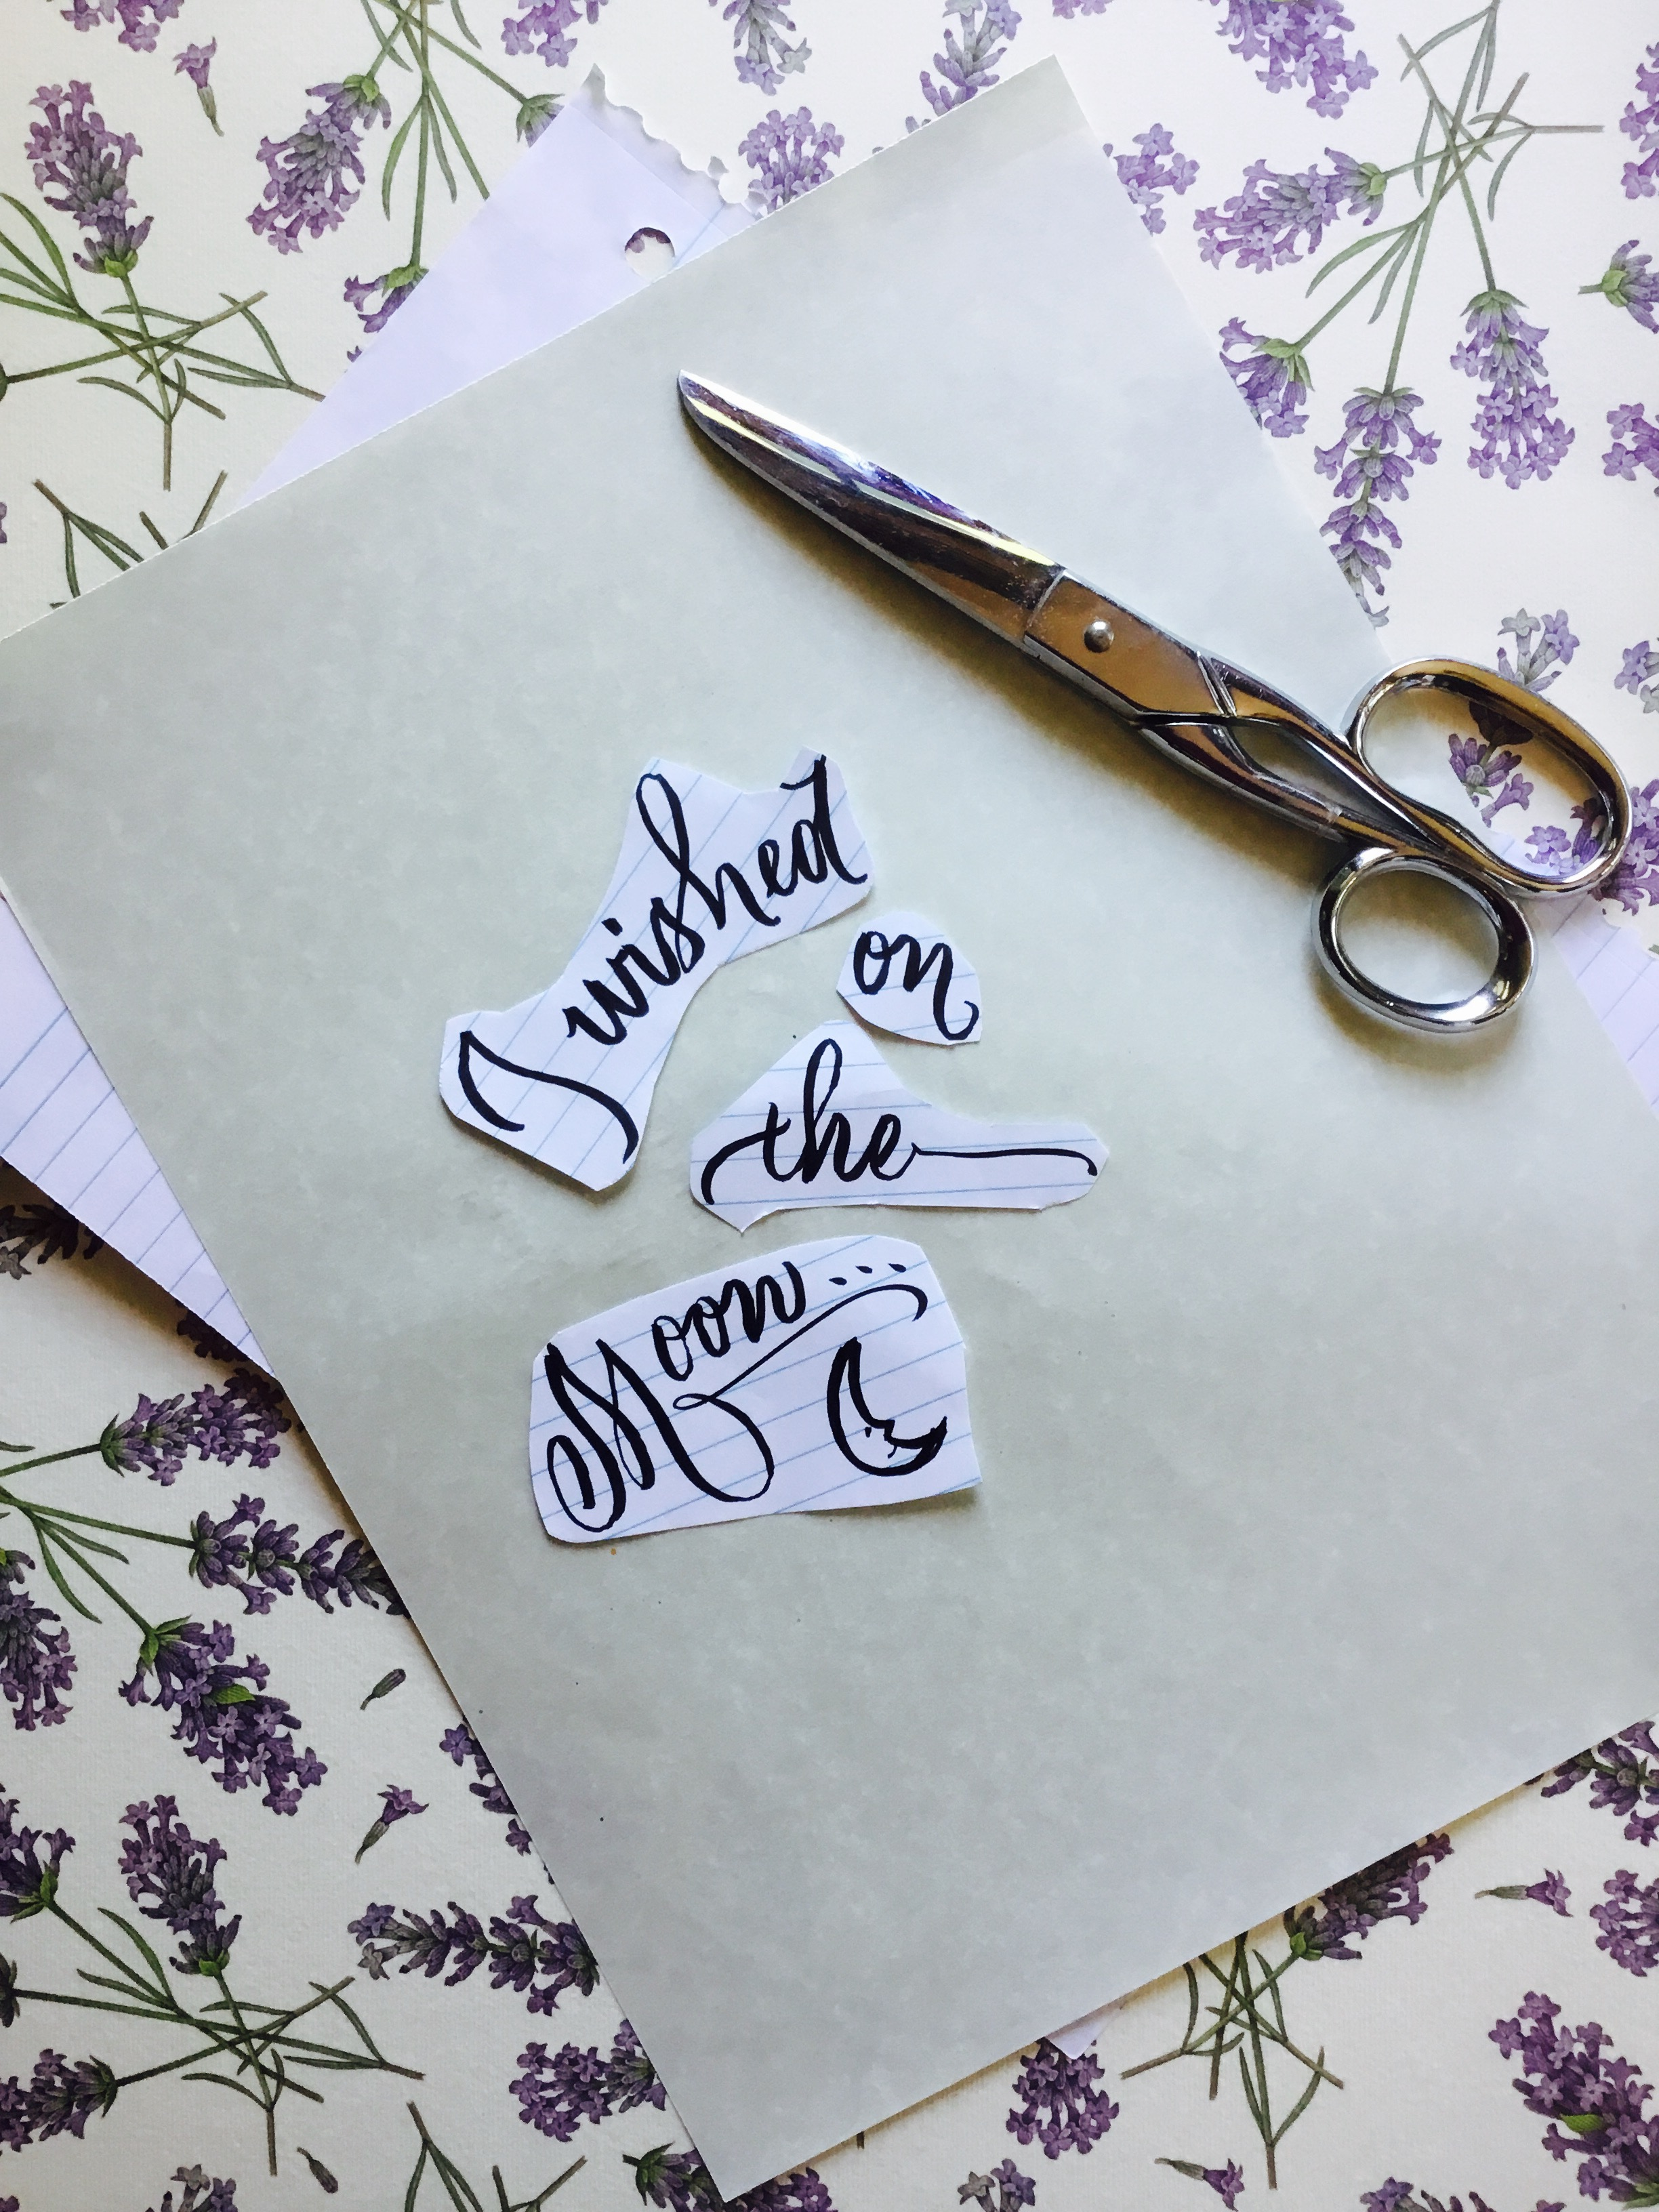 Cut up calligraphy words